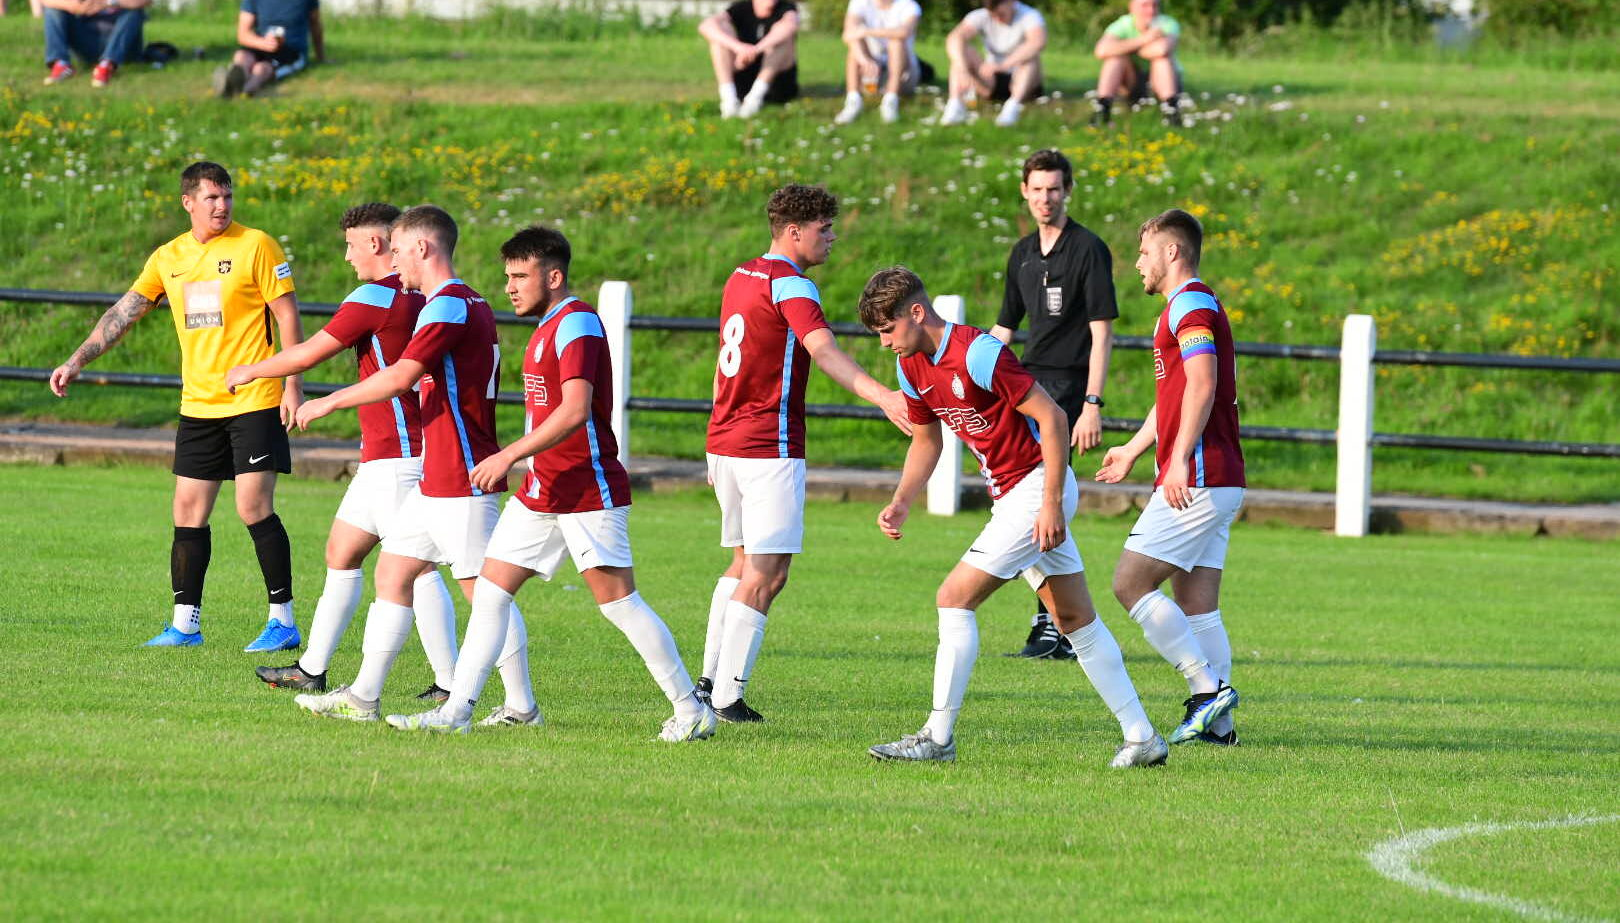 Match report: Crook Town 1-2 South Shields